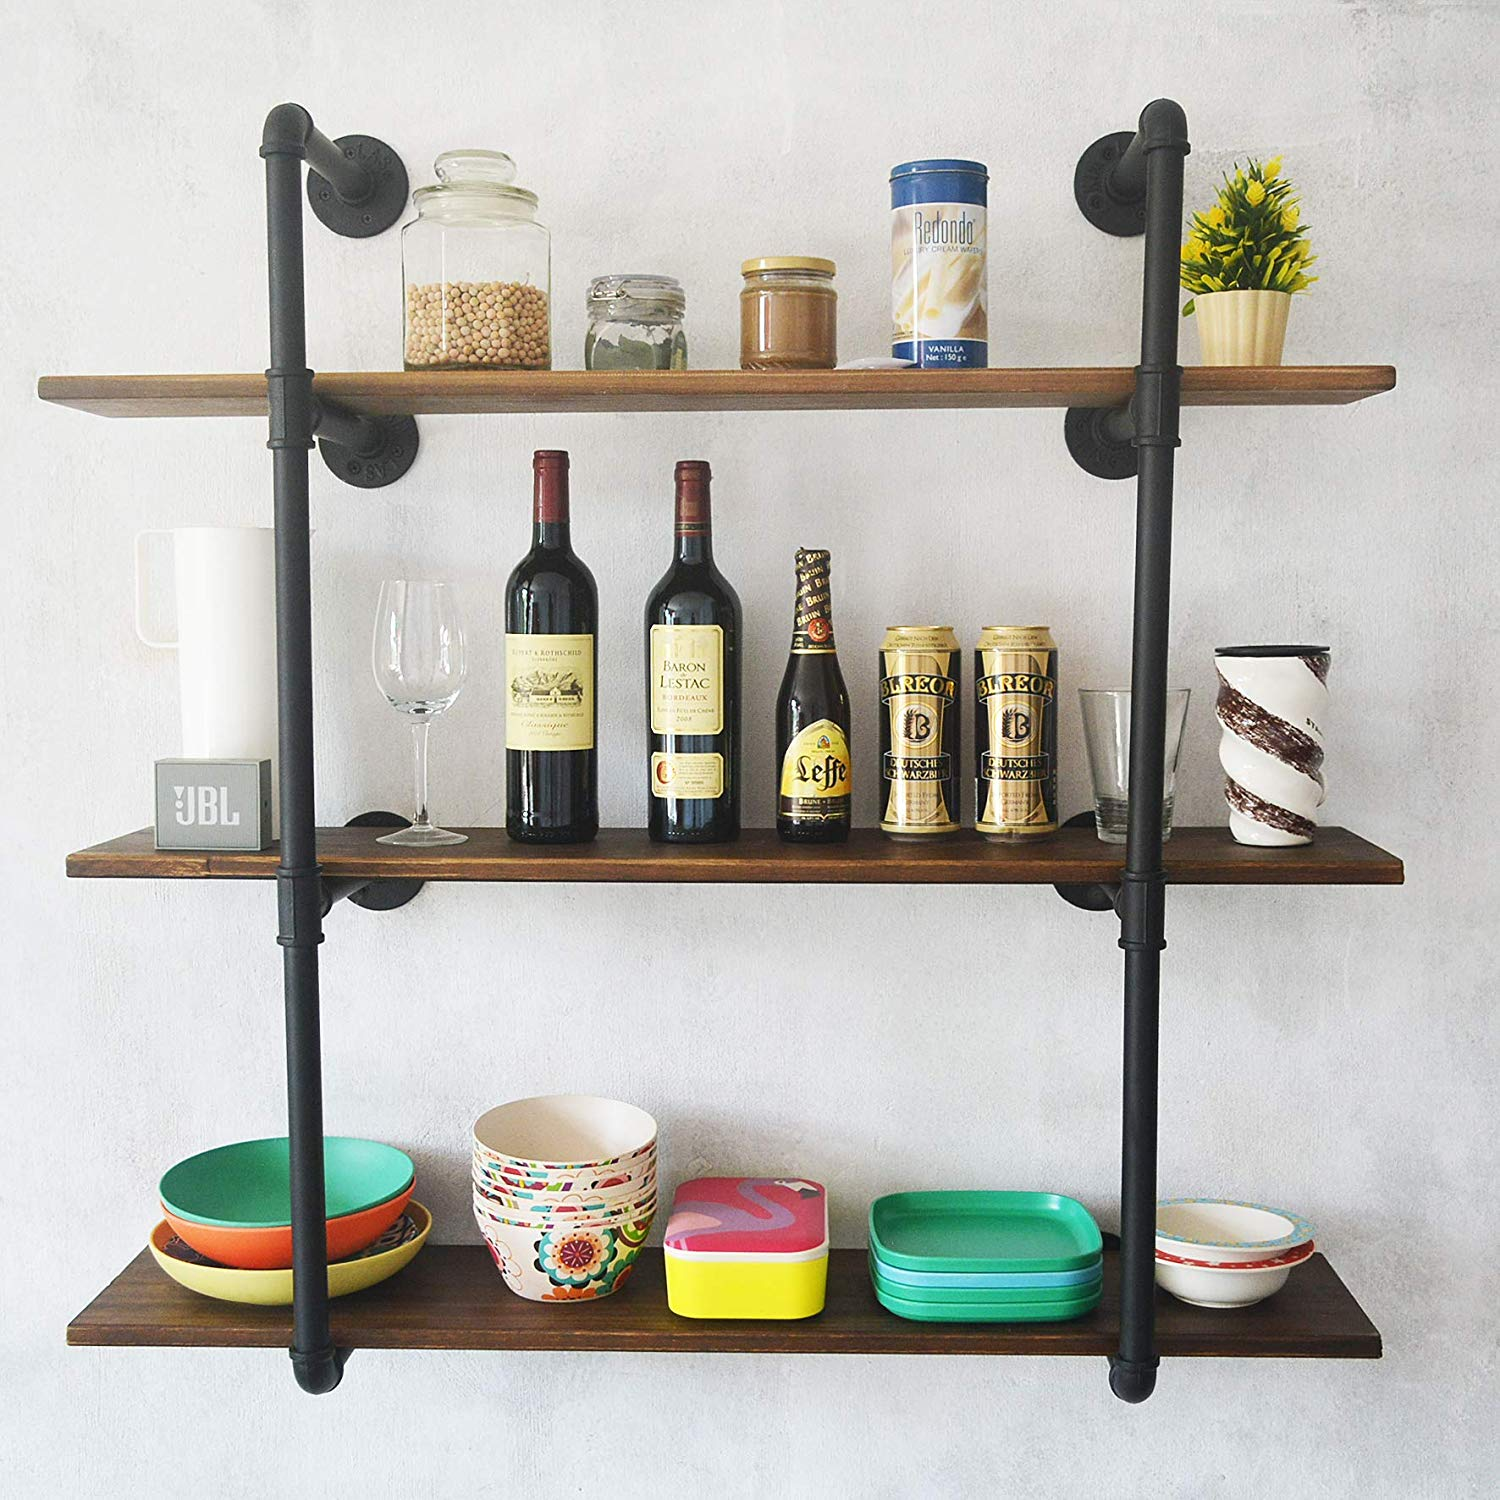 puncia pipe solid wood heavy duty kitchen book wall floating shelves for books long wooden bookcase shelf farmhouse decor display cool bookshelves jual bracket decoration shoe